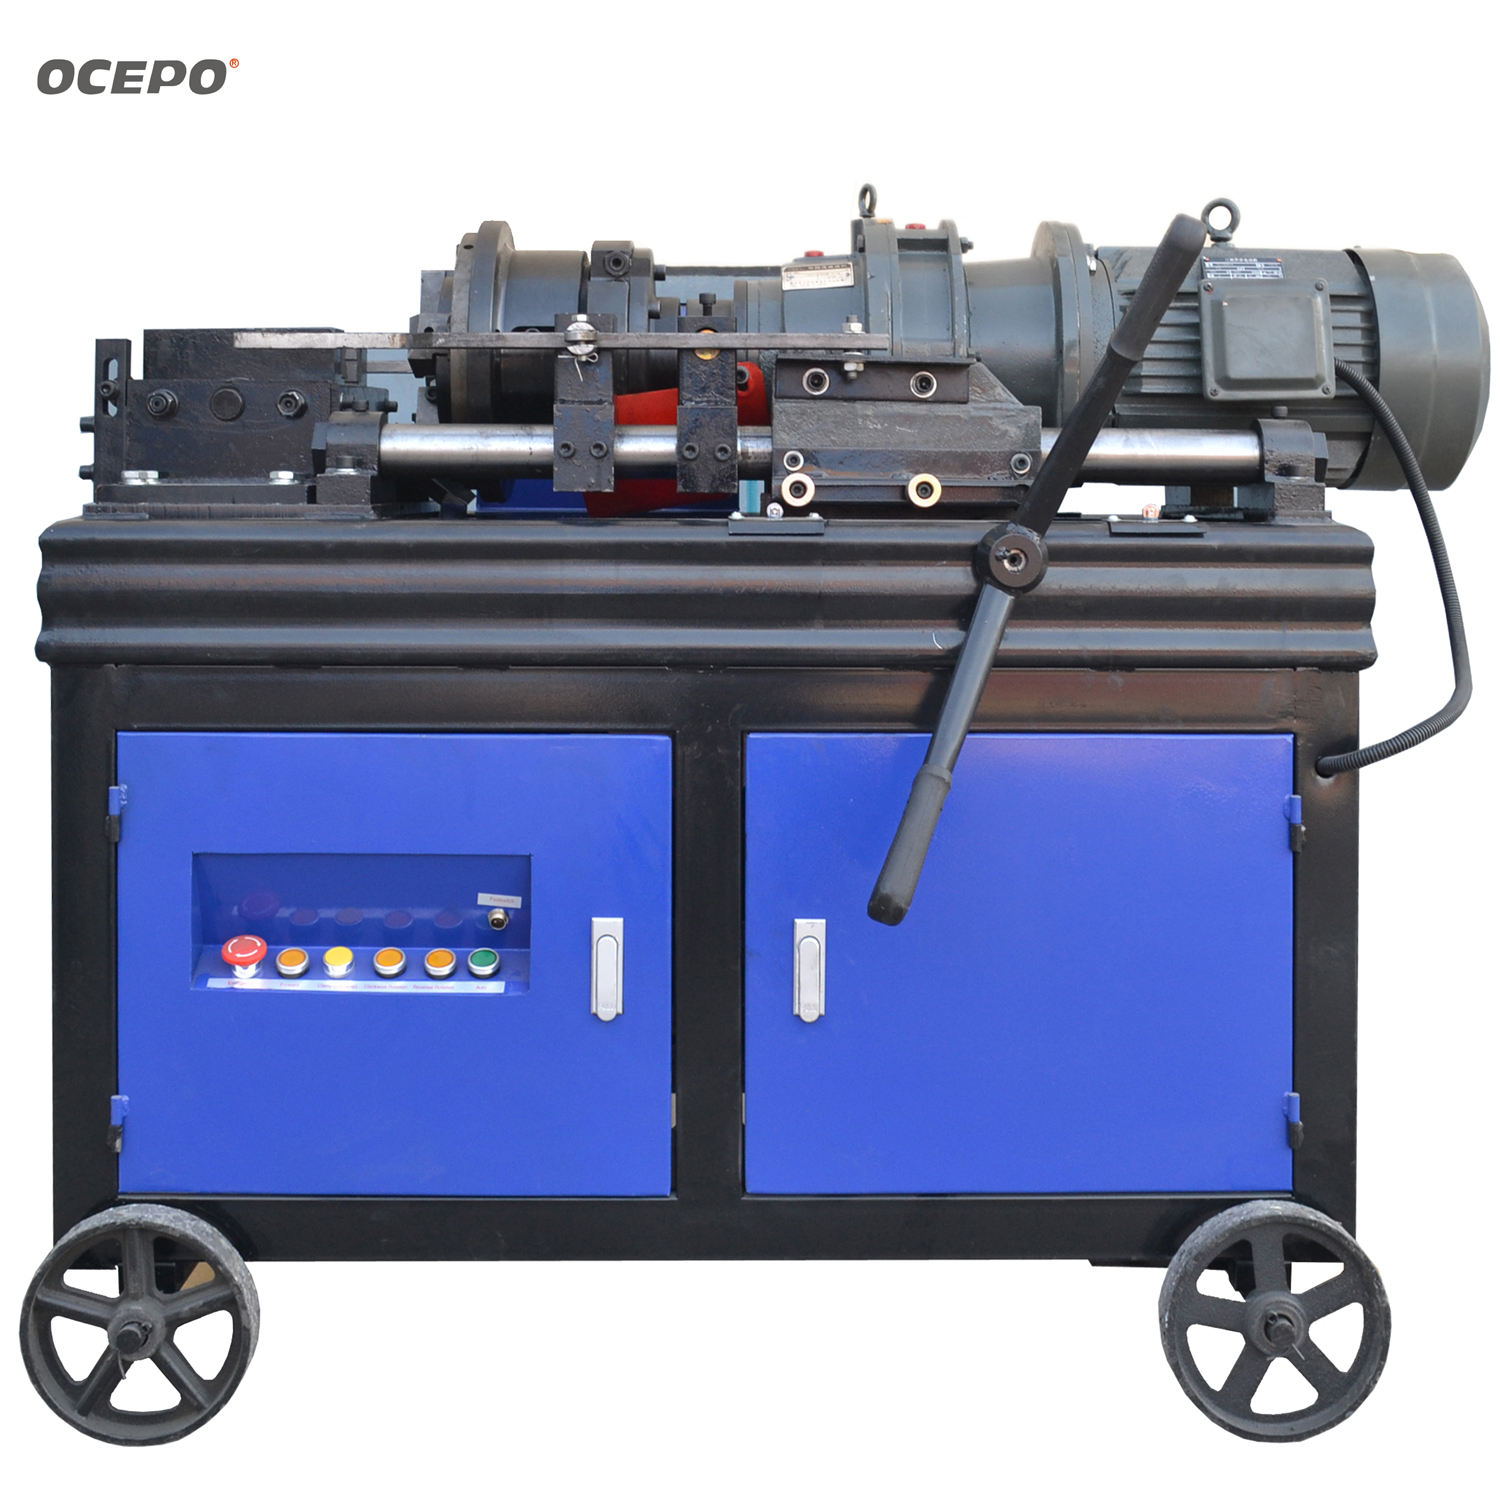 OCEPO AGS-40DZ Automatic Thread Rolling Machine